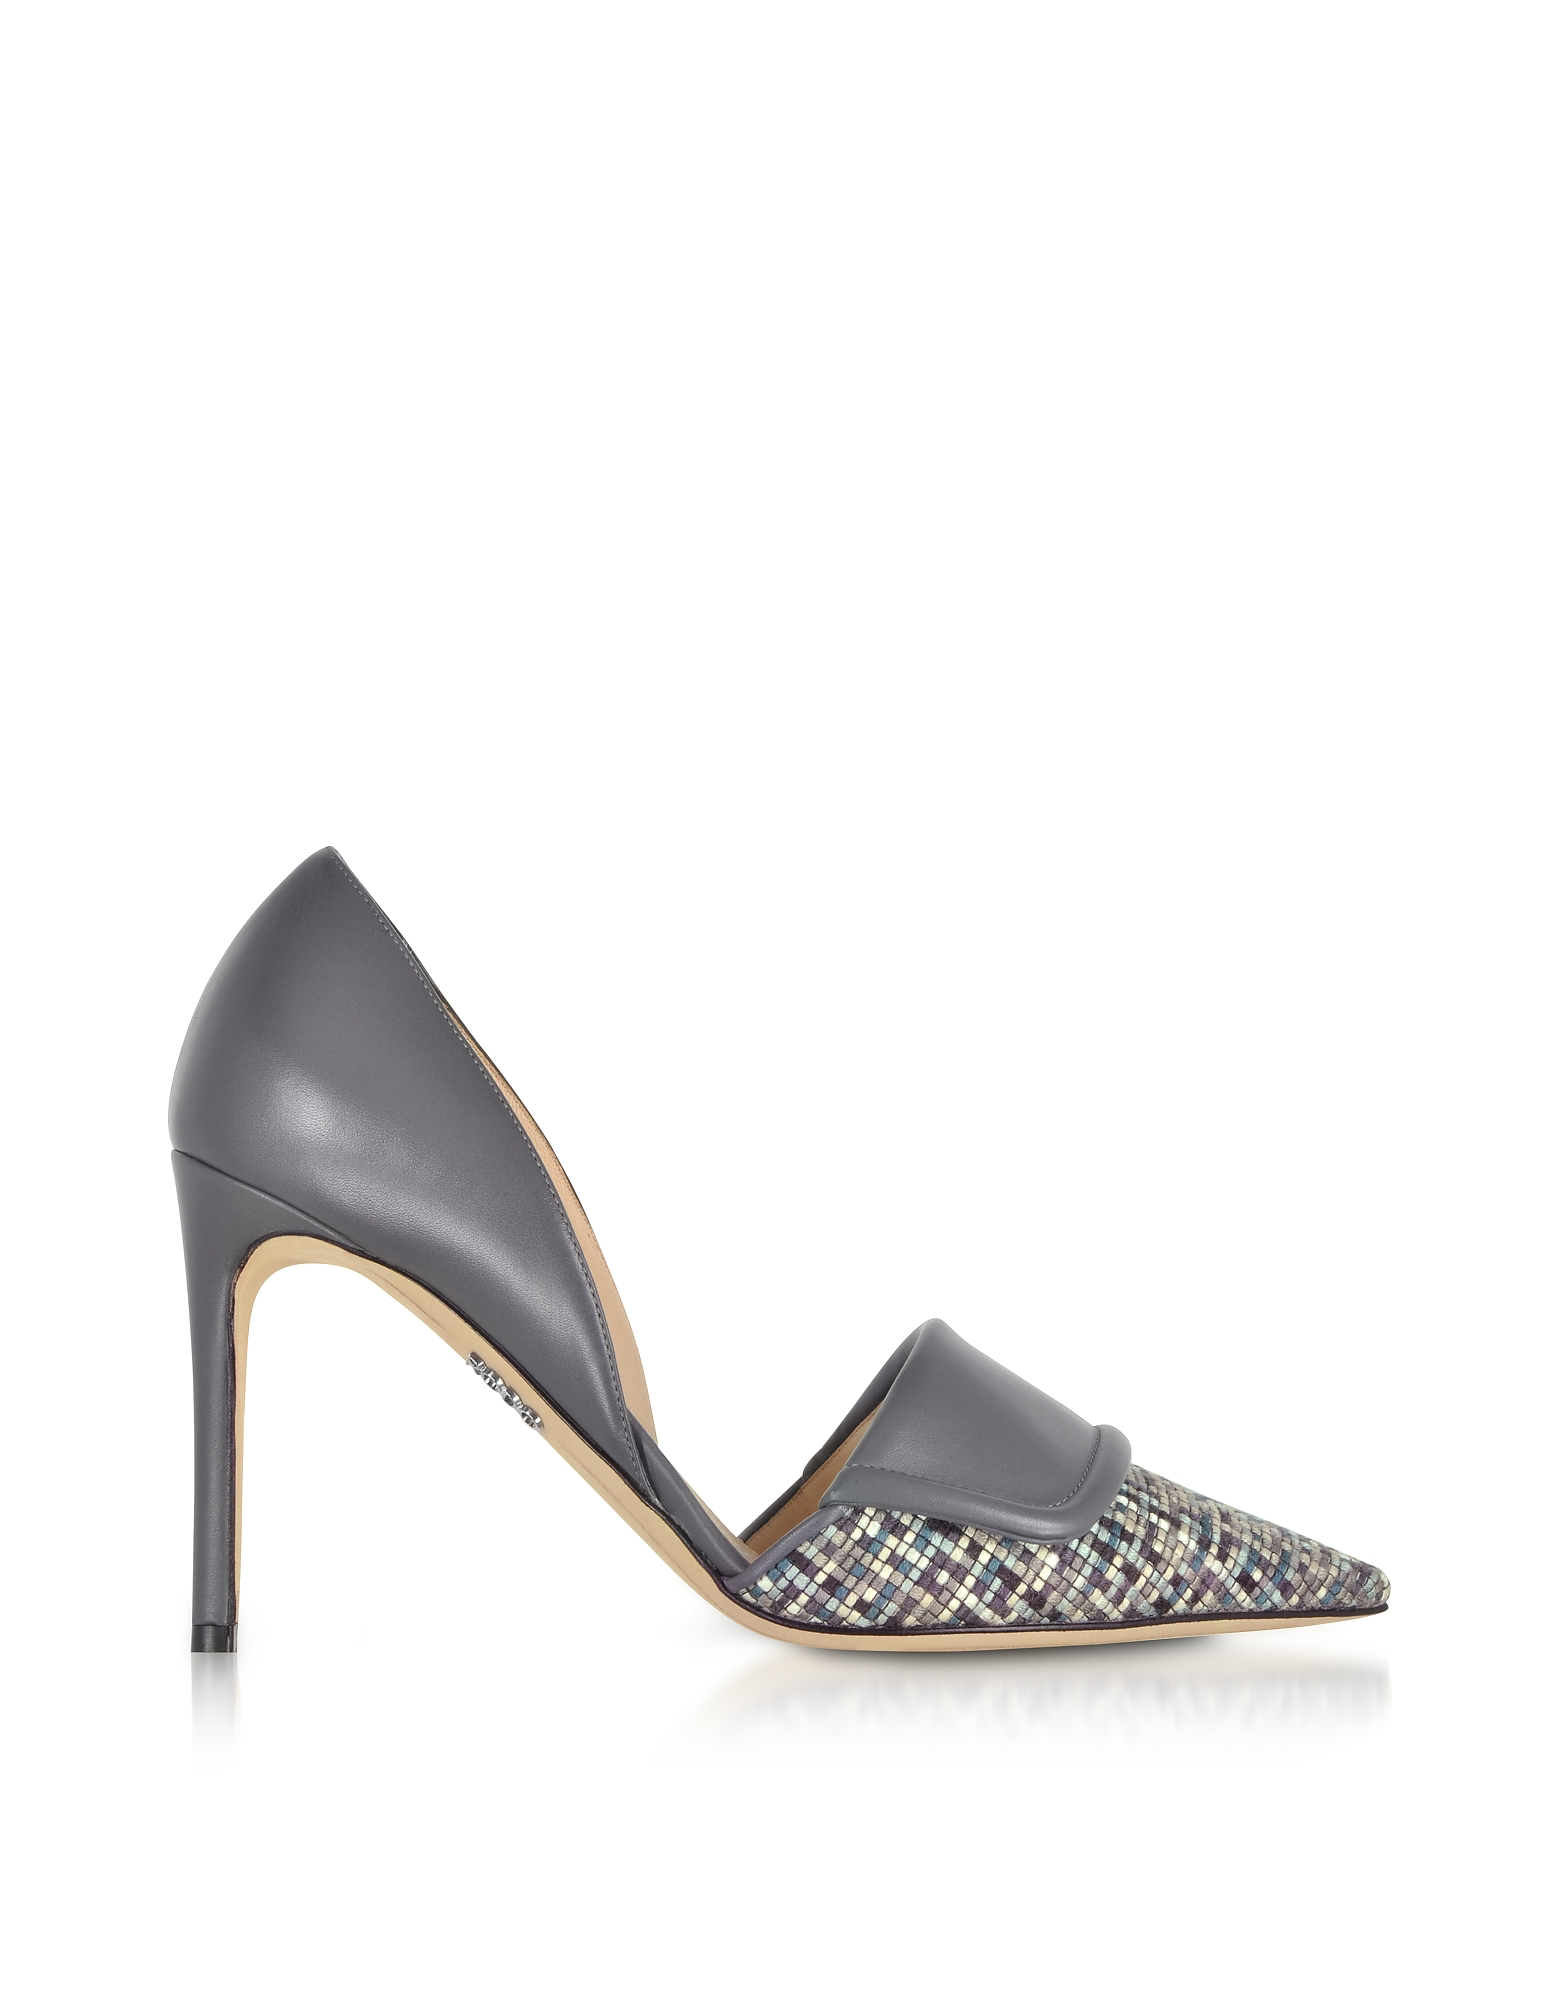 Rodo Shoes, Leather and Tweed High Heel Pumps